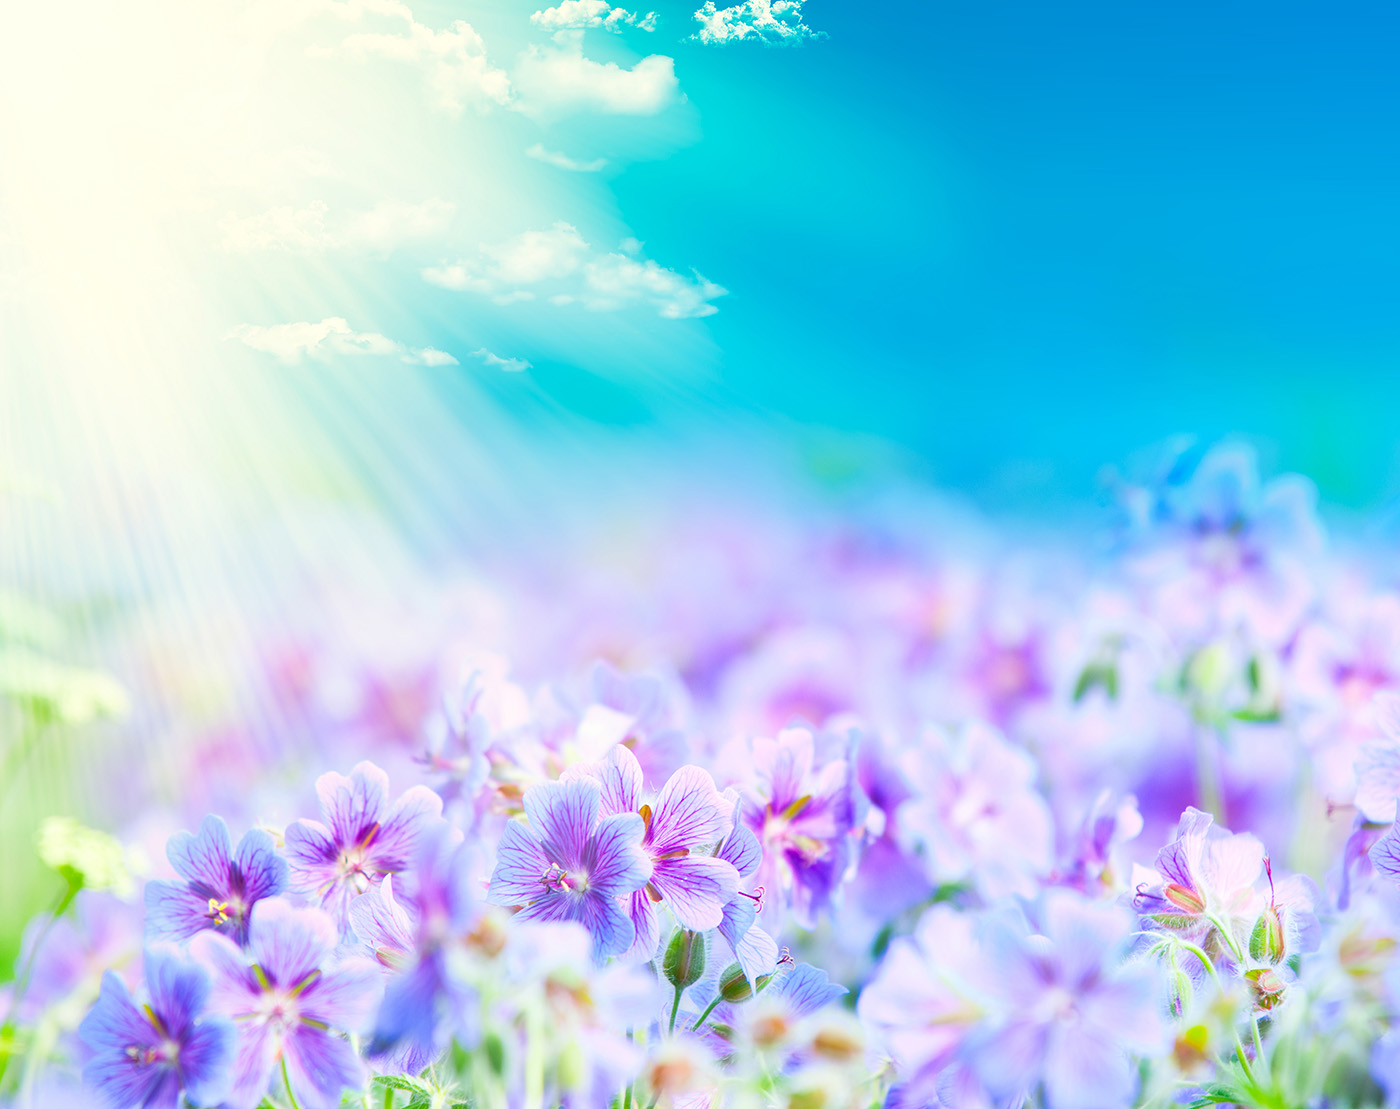 Blue sky with bright purple flowers 50090